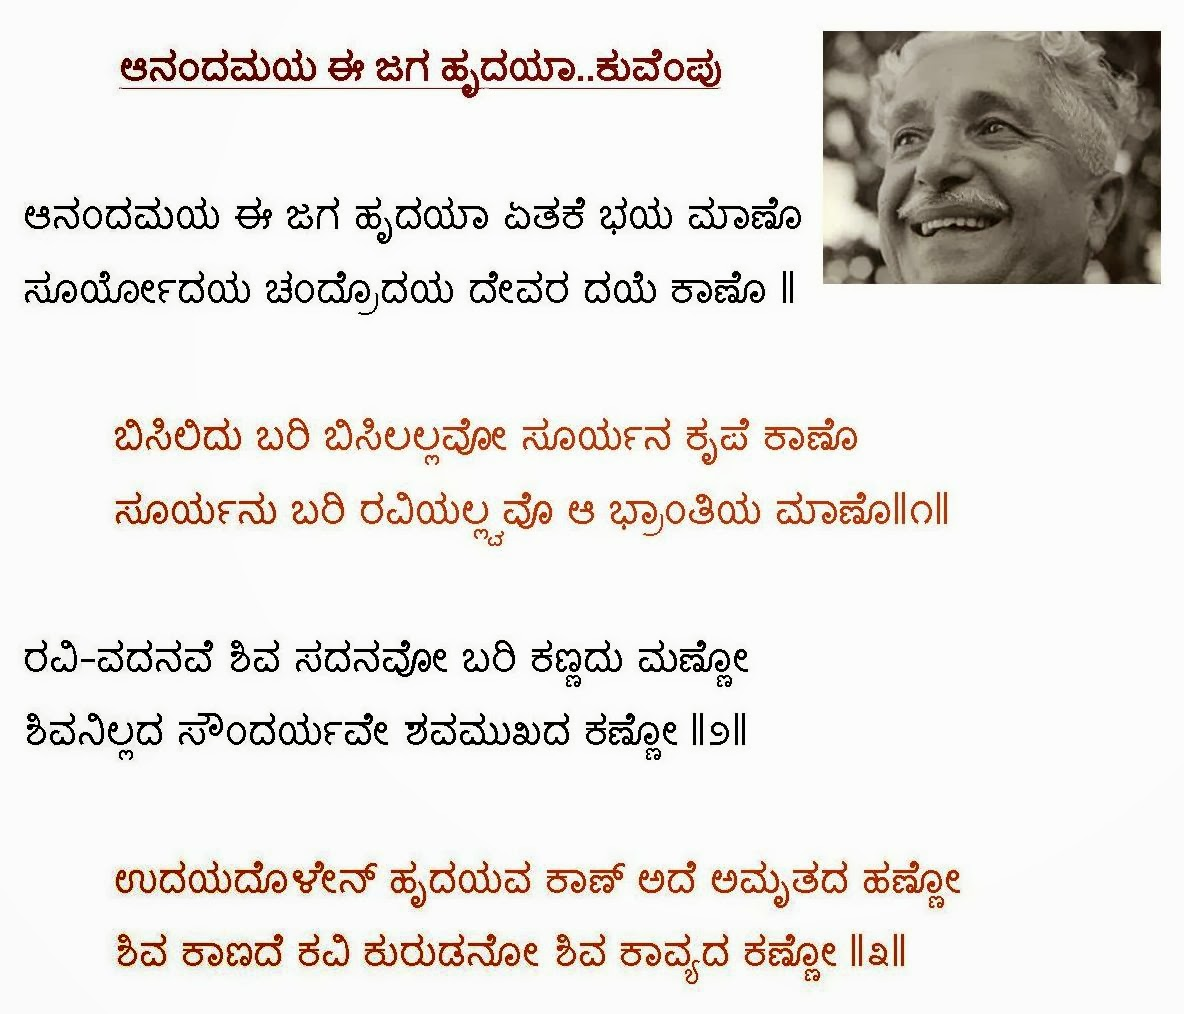 essay on kuvempu Browse through kuvempu's poems and quotes 4 poems of kuvempu phenomenal woman, still i rise, the road not taken, if you forget me, dreams kuppali venkatappagowda puttappa, widely known by the pen name kuvempu or by the abbreviation k v.